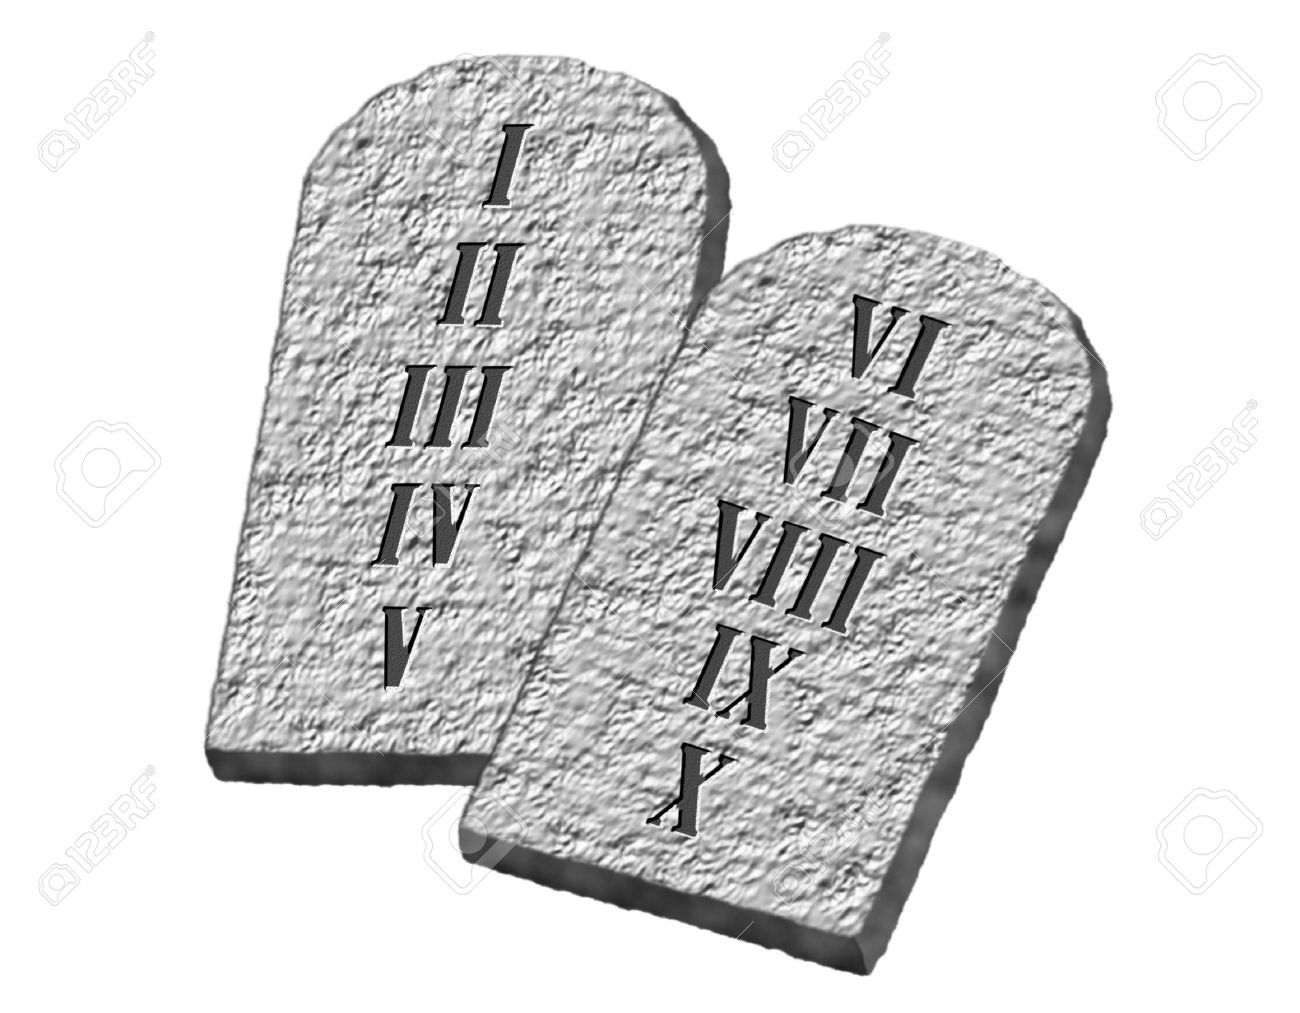 The Ten Commandments Of Moses Written On Stone Tablets Stock Photo Picture And Royalty Free Image Image 5909930